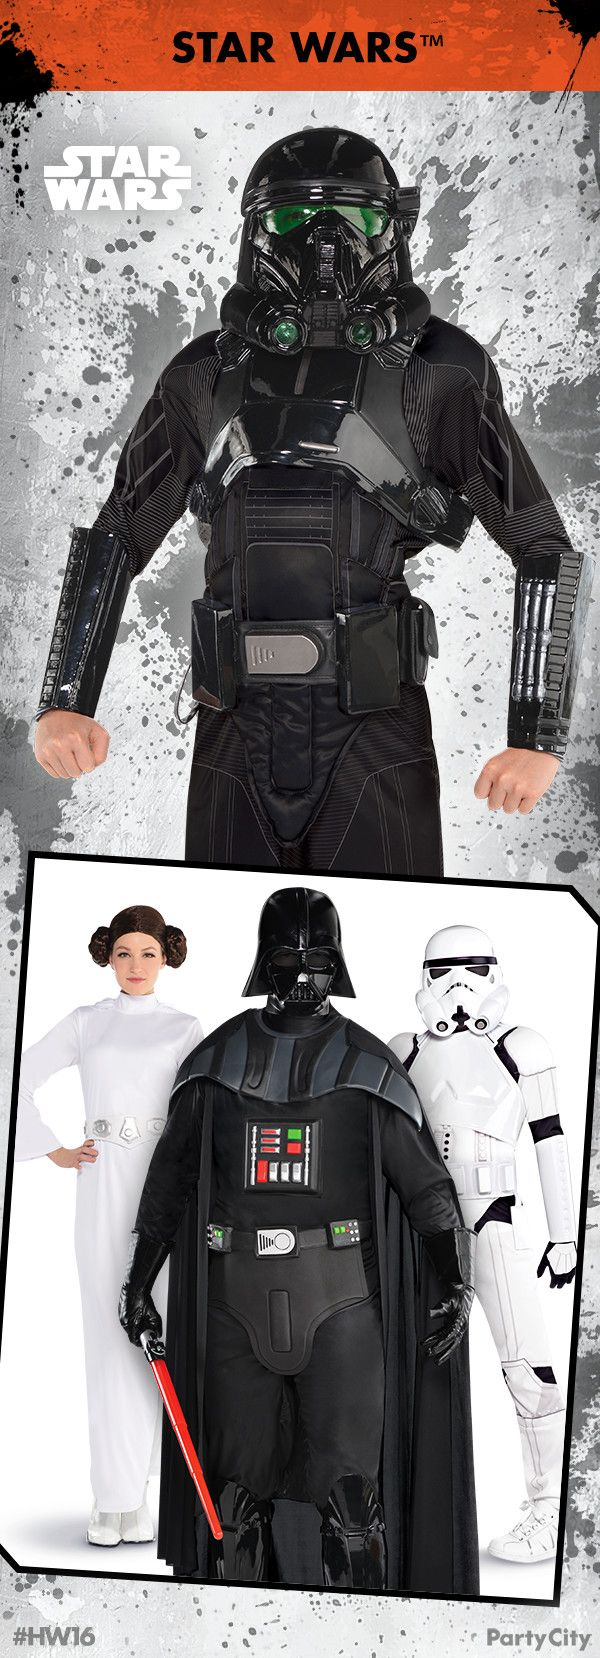 It's true, all of it. Party City now has Star Wars costumes ...